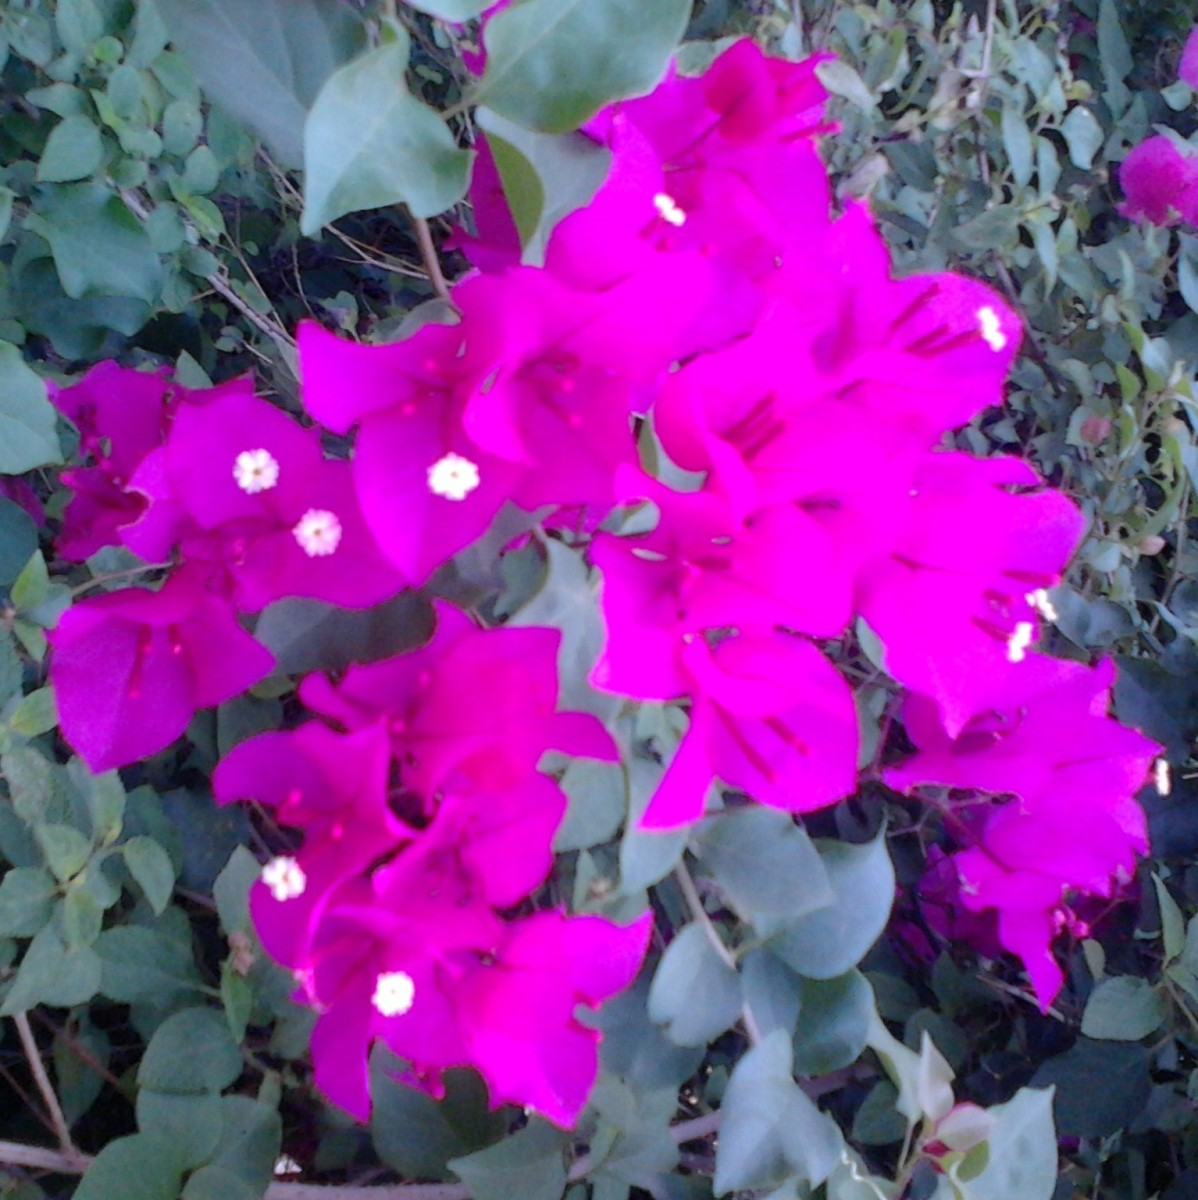 Bougainvillea Beautiful Bracts to Behold -A Photo Gallery